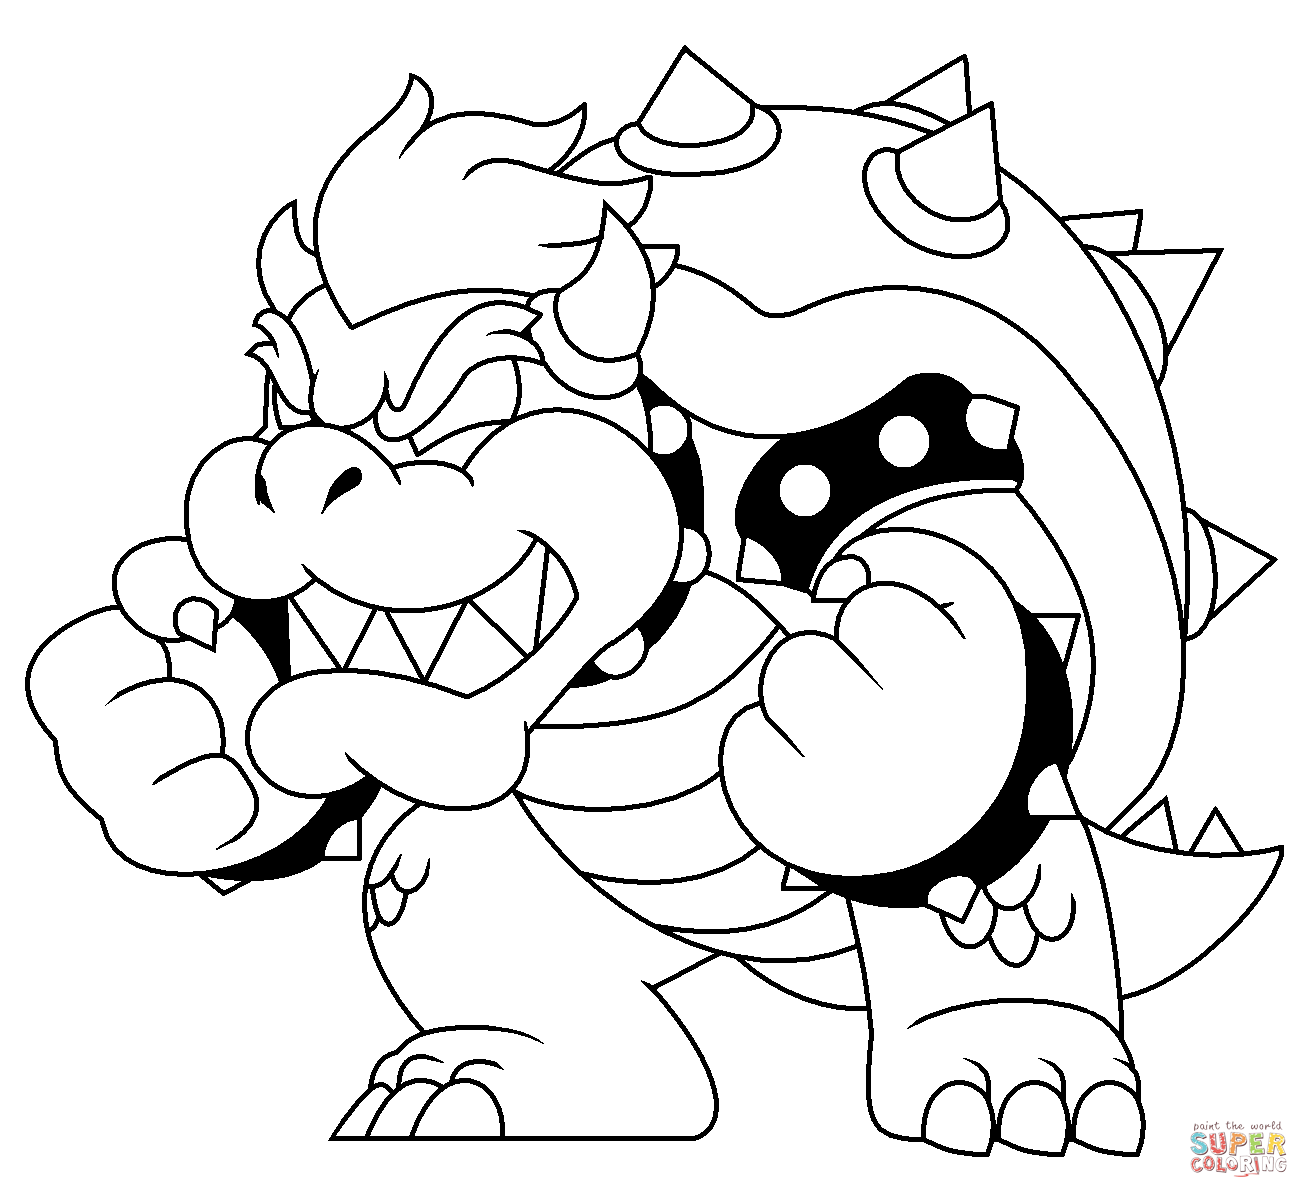 bowser colouring pages bowser printable coloring pages coloring home bowser pages colouring